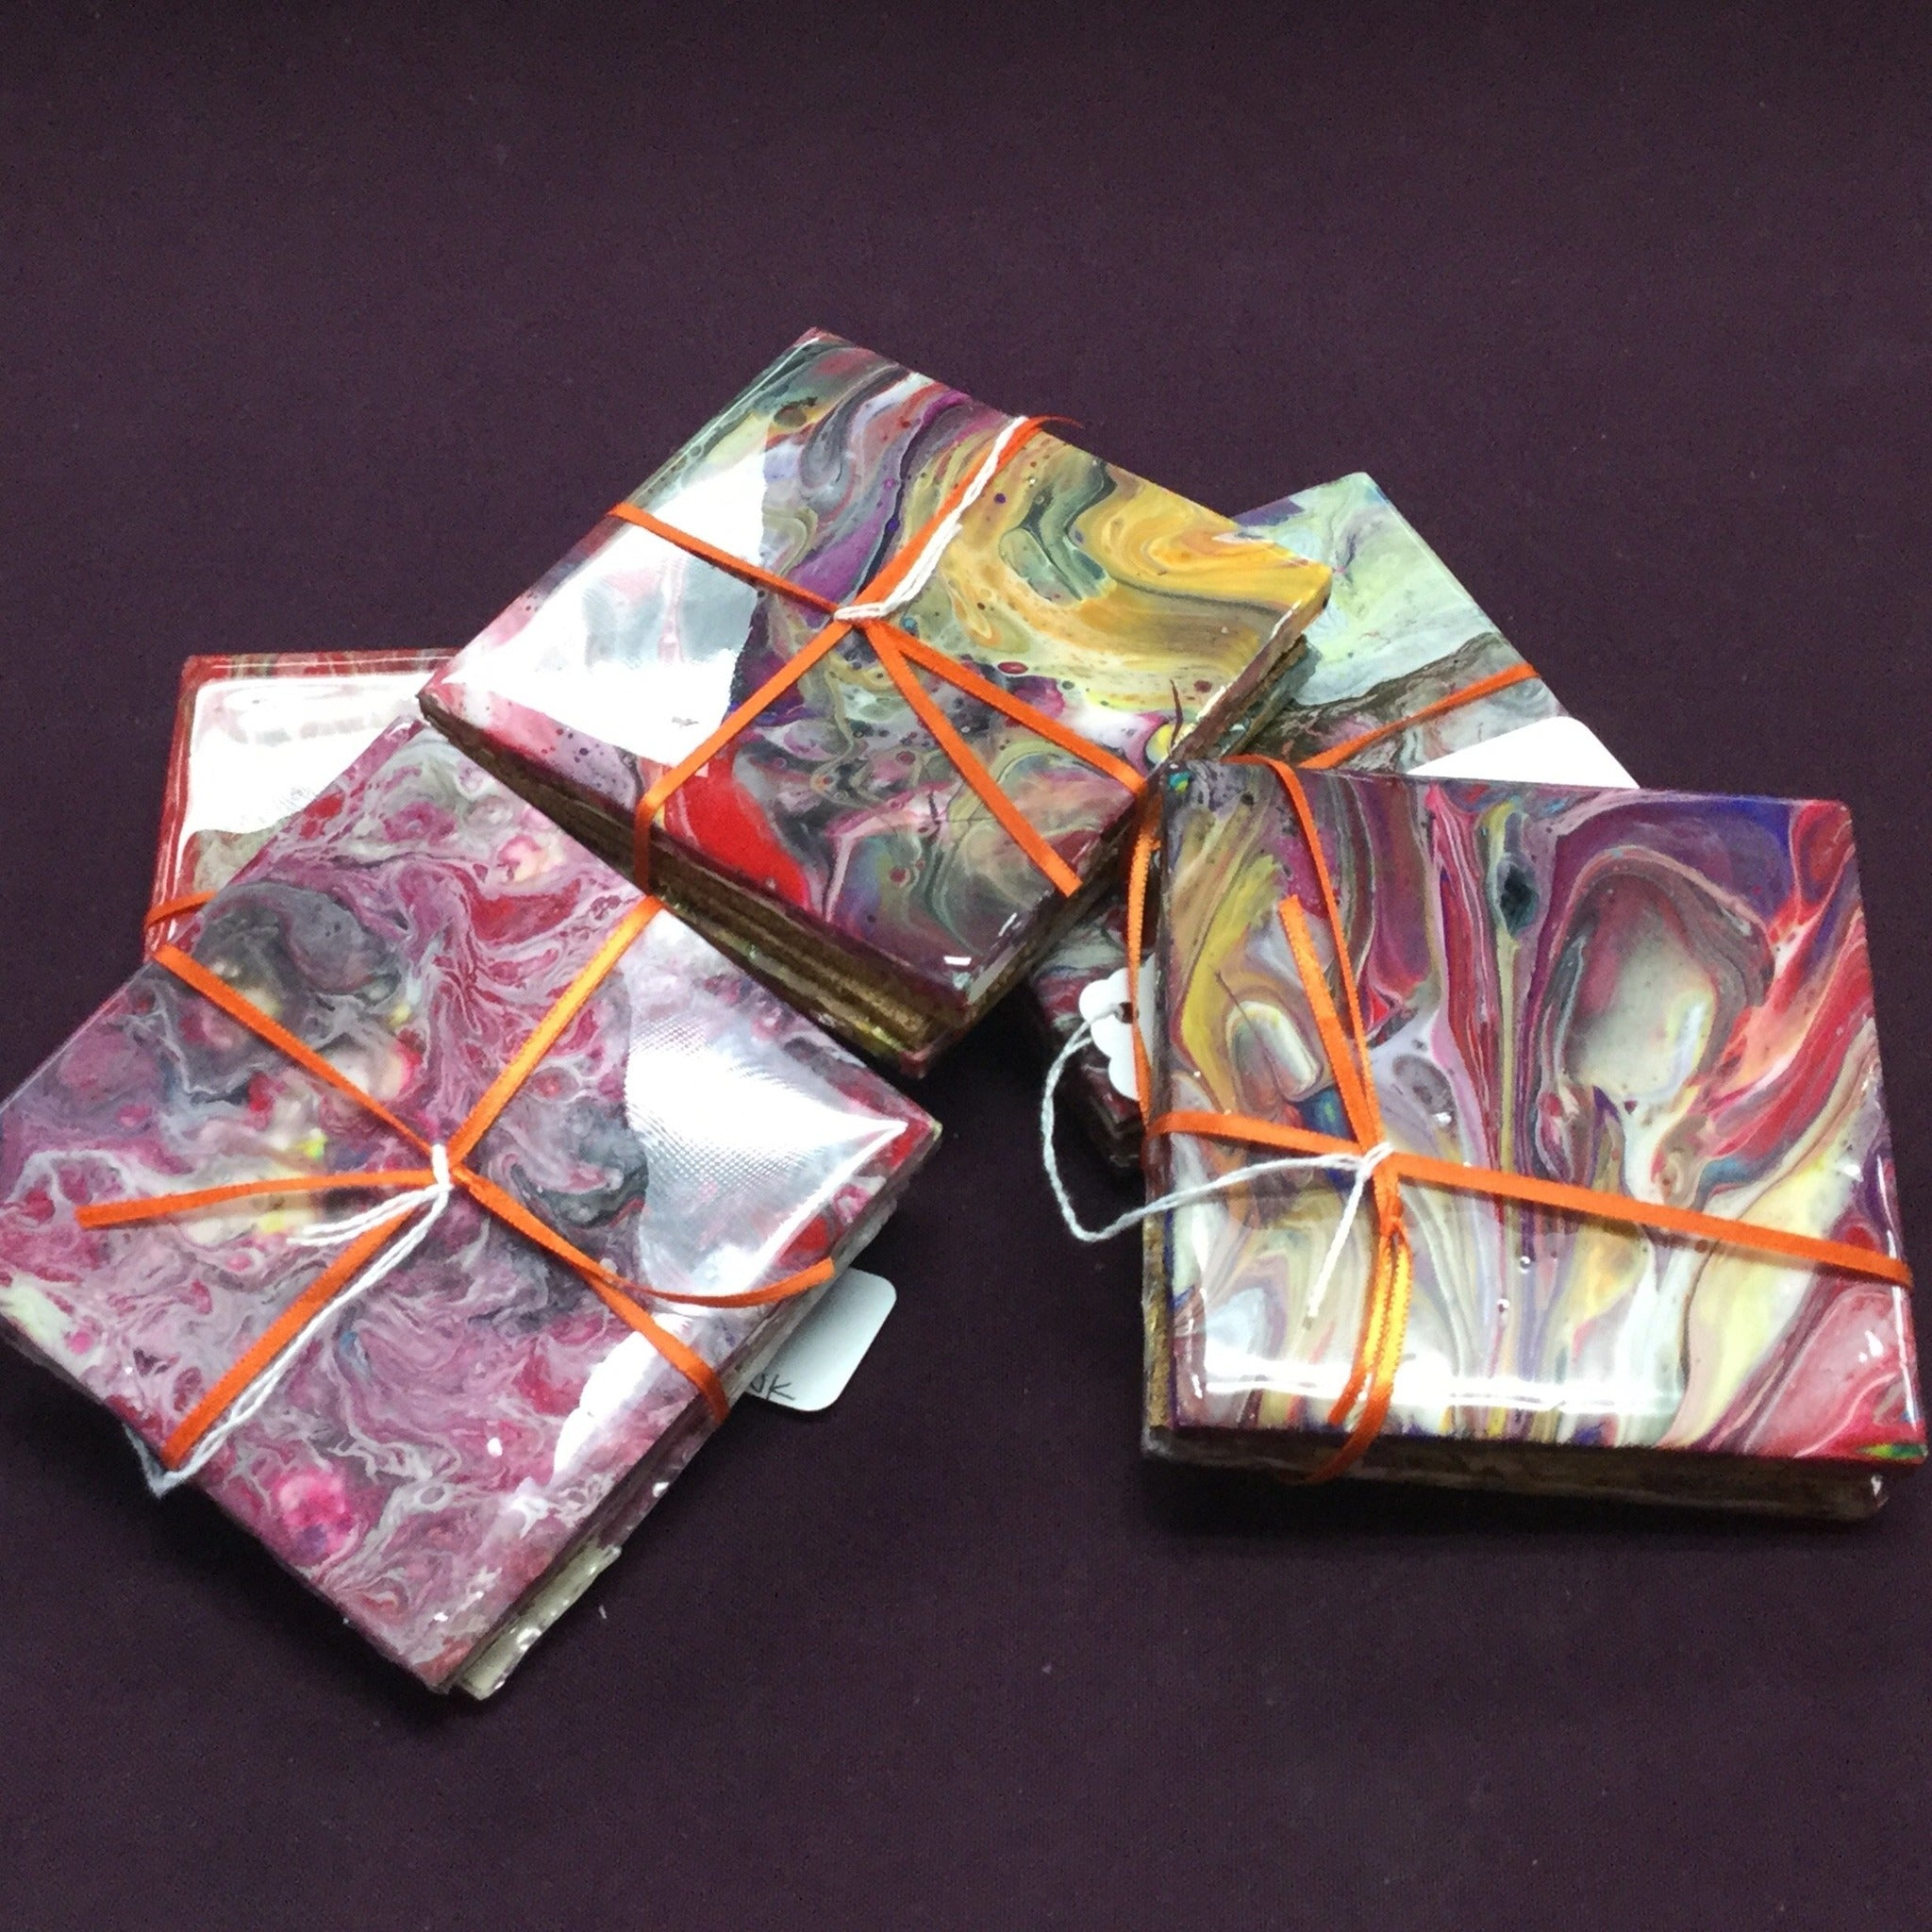 Acrylic/Resin Artwork Coasters